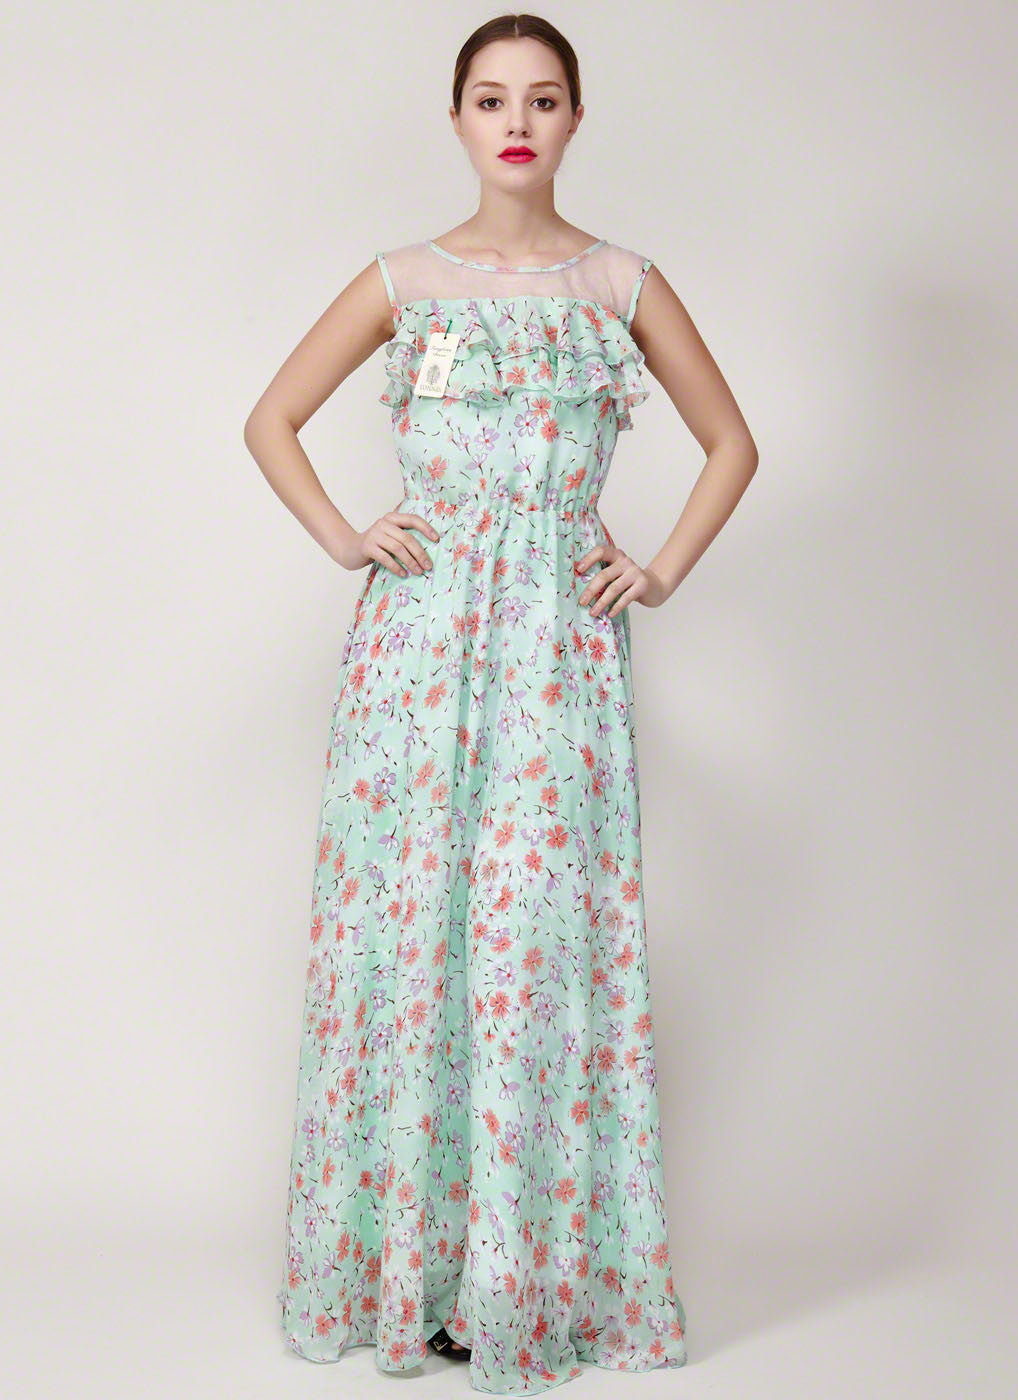 344a407203 Floral Printed Chiffon Maxi Dress with Sheer Organza and Flounce Details-  Aquamarine Floral Sun Dress